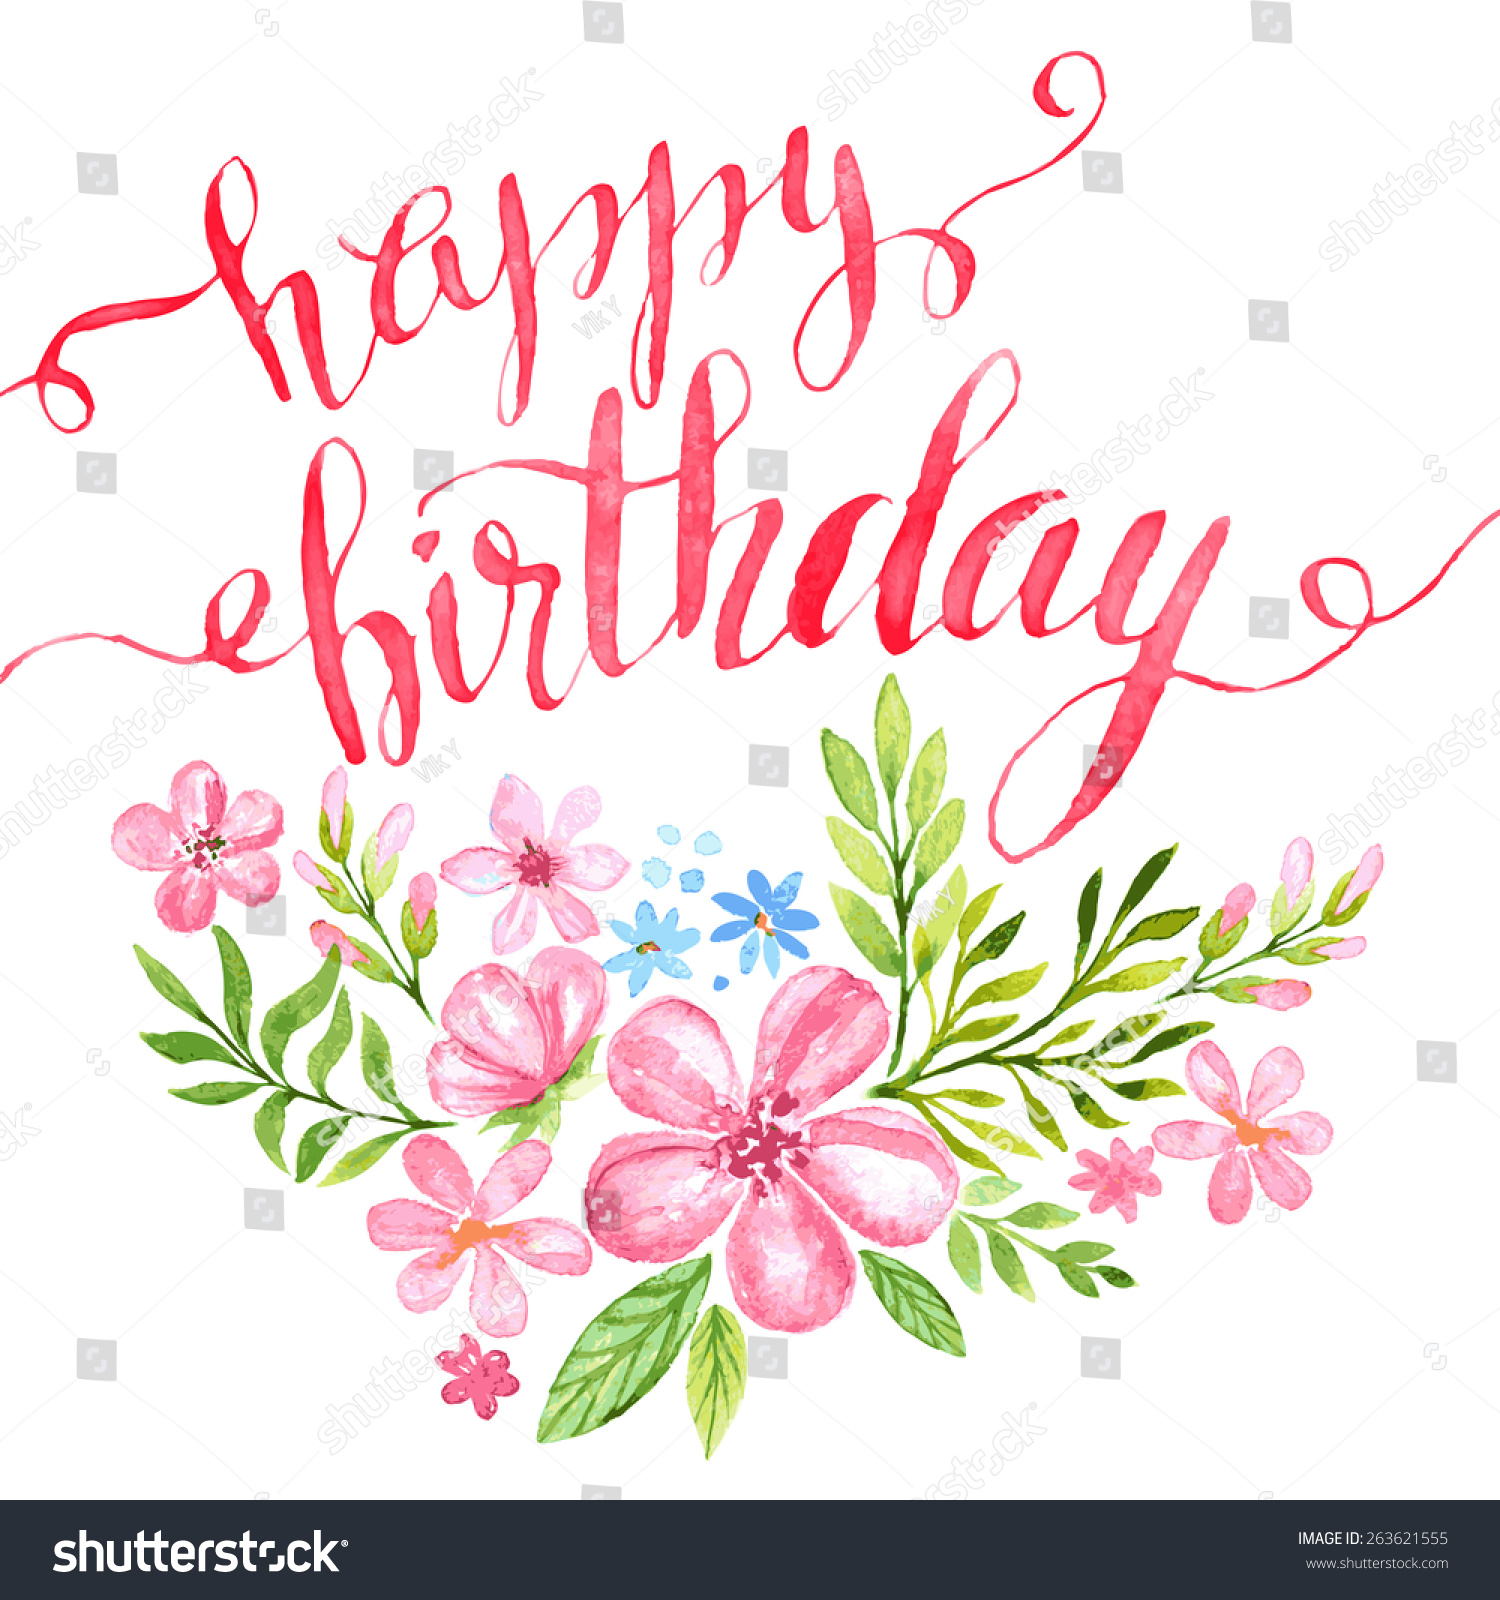 Lettering happy birthday handdrawn card flower stock vector lettering happy birthday hand drawn card with flower vector illustration eps 10 izmirmasajfo